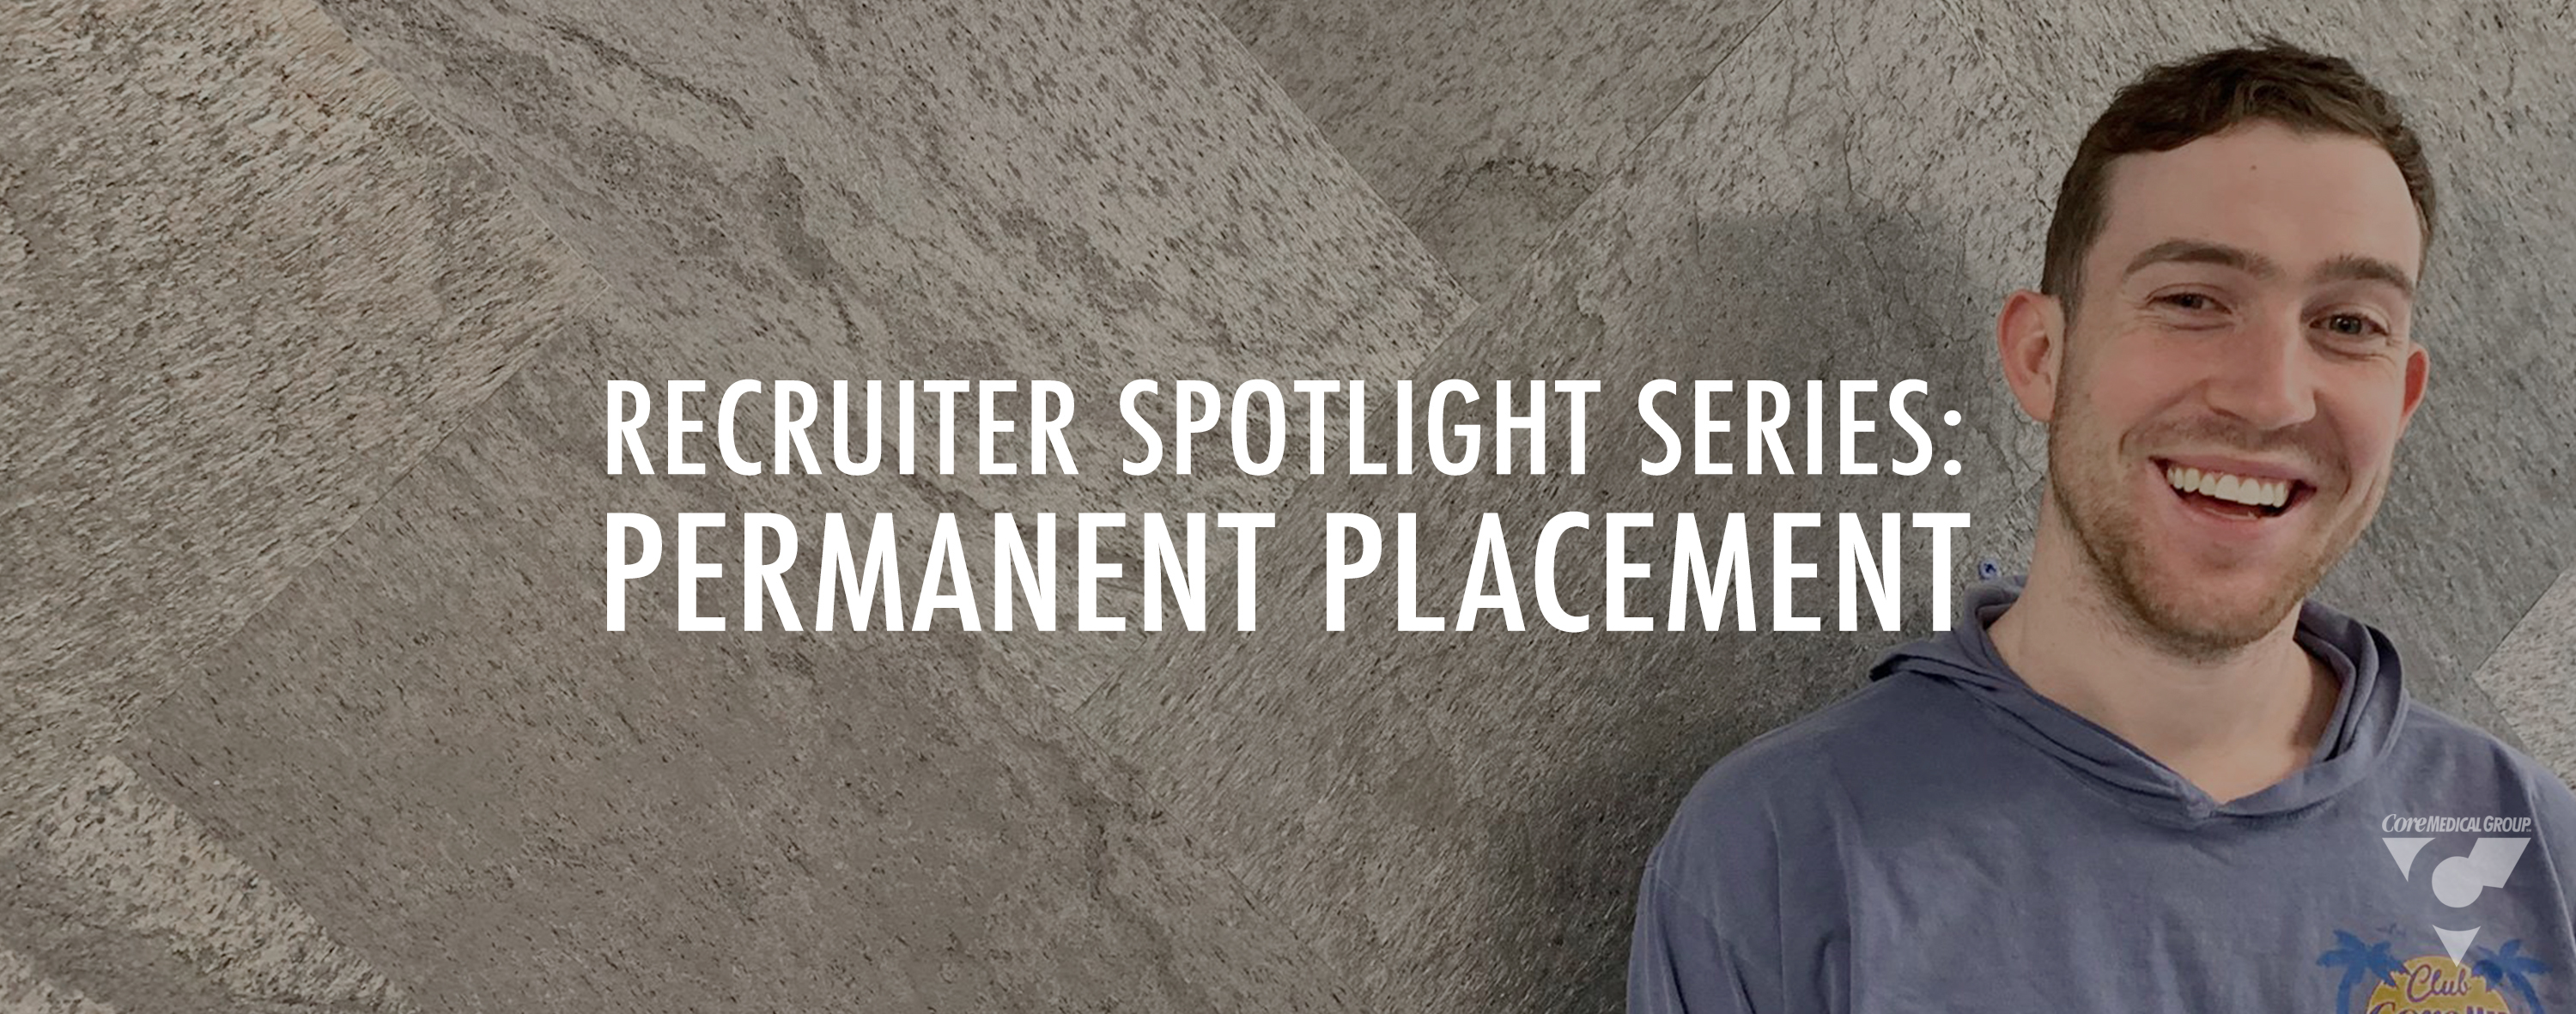 Recruiter Spotlight Series: Permanent Placement